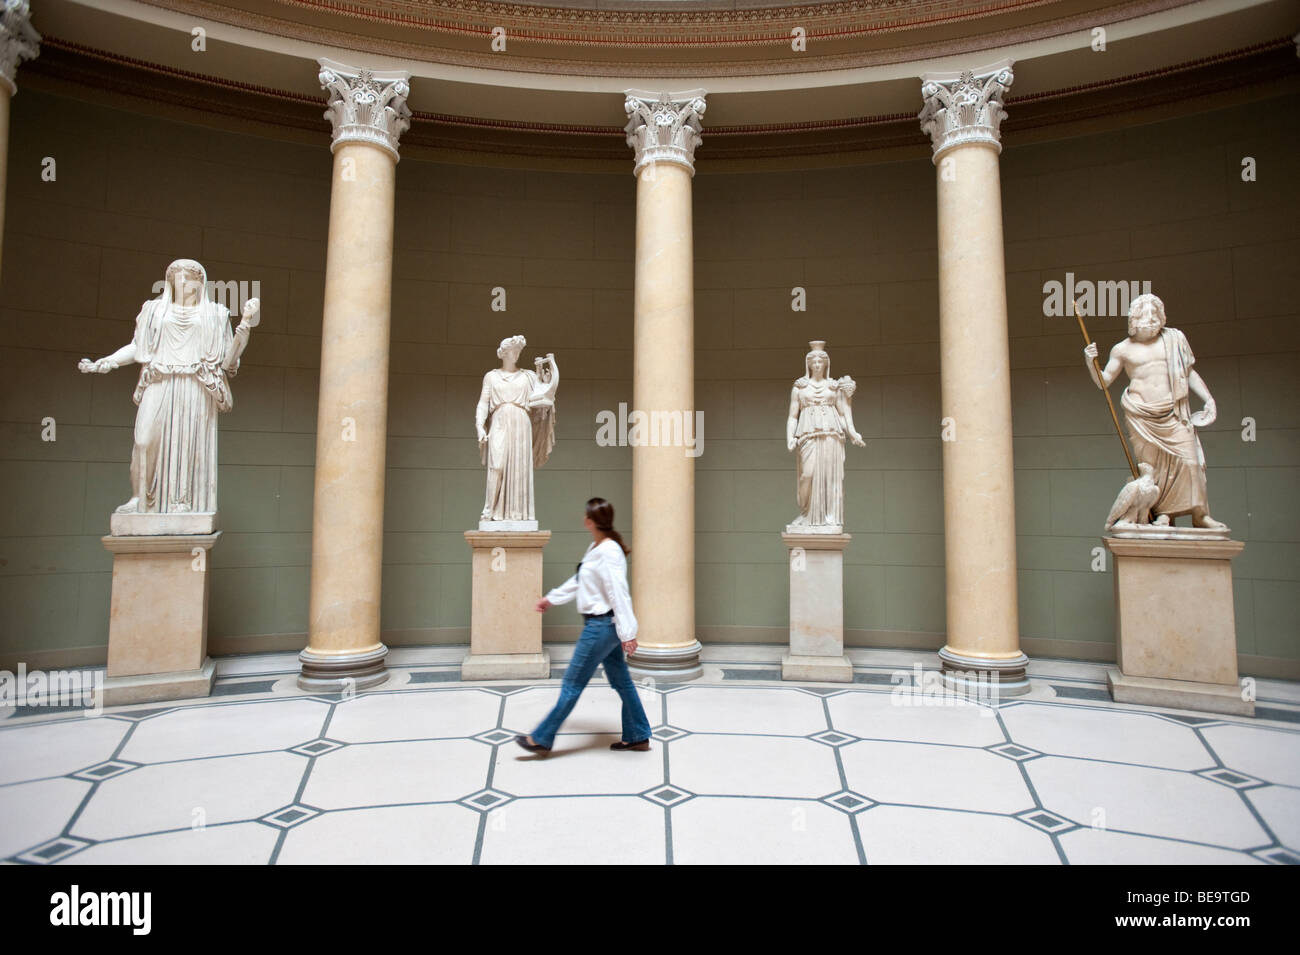 Sculptures in atrium of Altes Museum on Museumsinsel in Berlin Germany - Stock Image